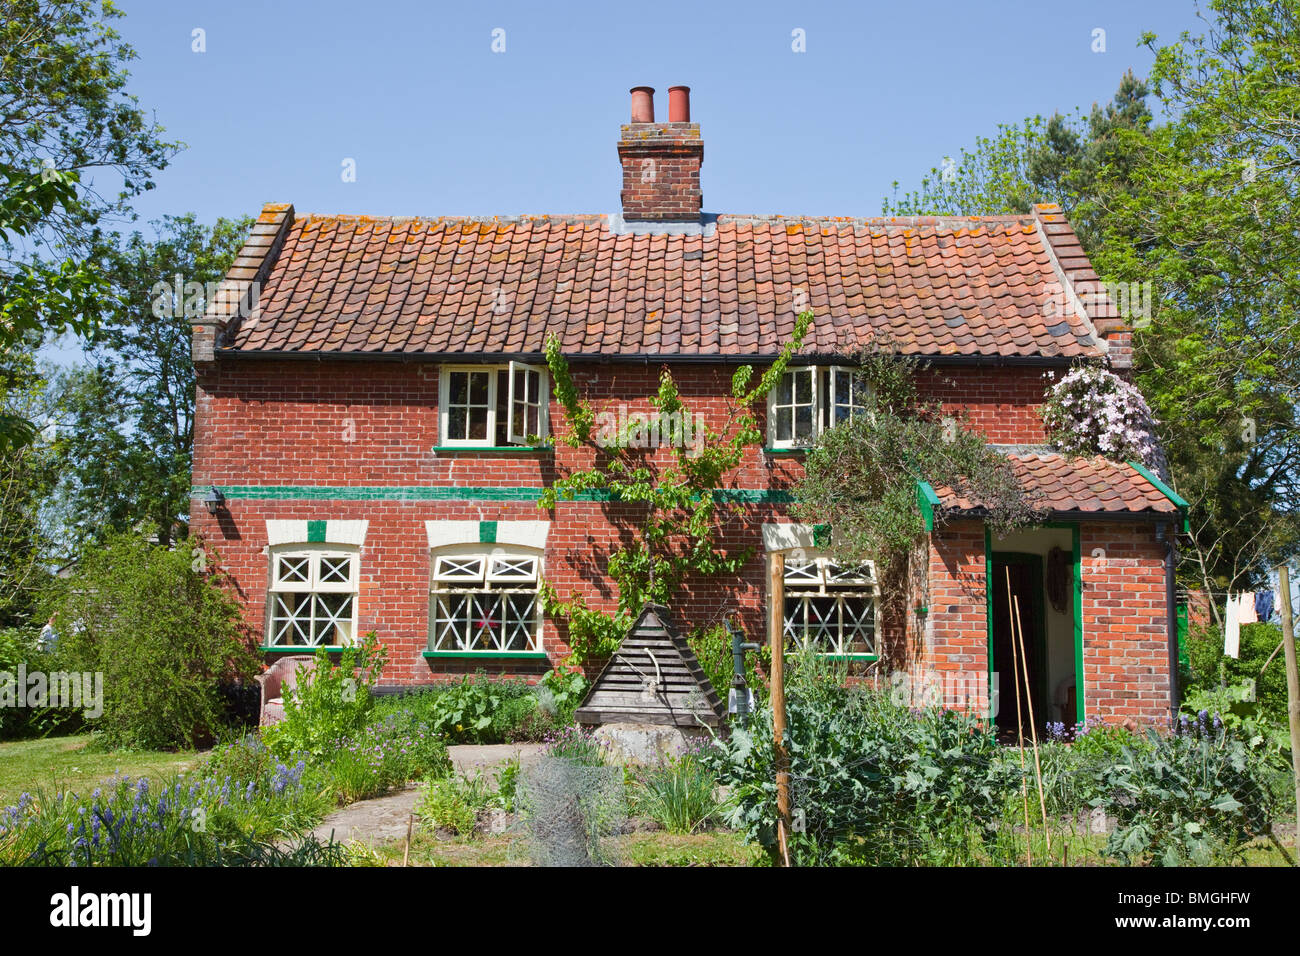 Cucina Cottage Inglese Paese Di Lingua Inglese Cottage A Bury Norfolk Con Giardino Cucina